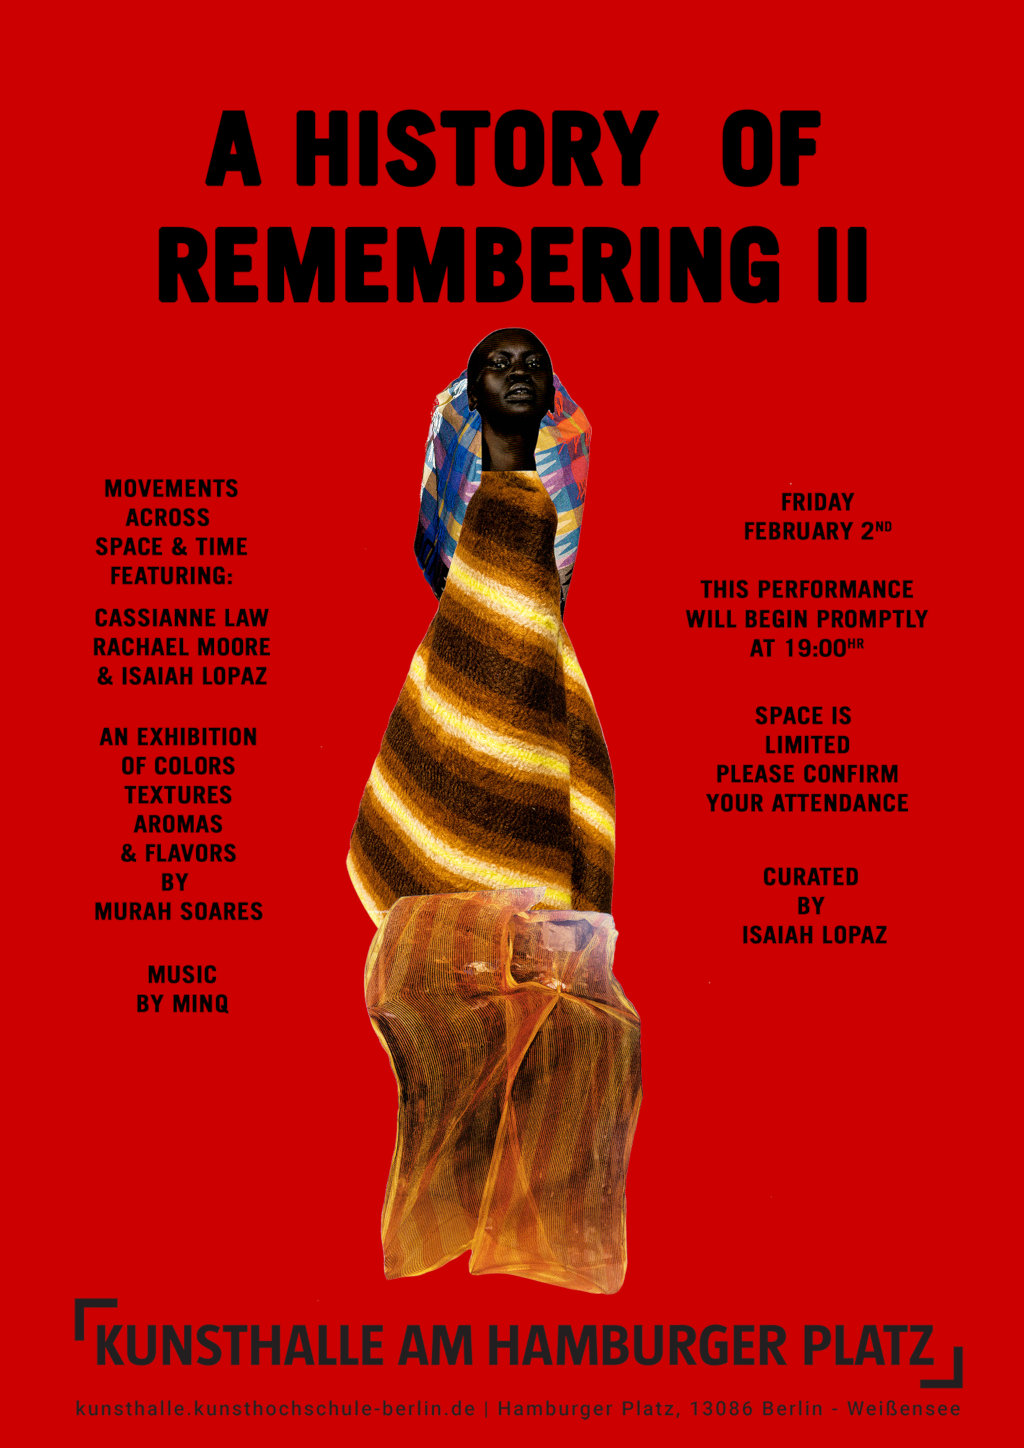 A History of Remembering II - CITIZEN NOIR